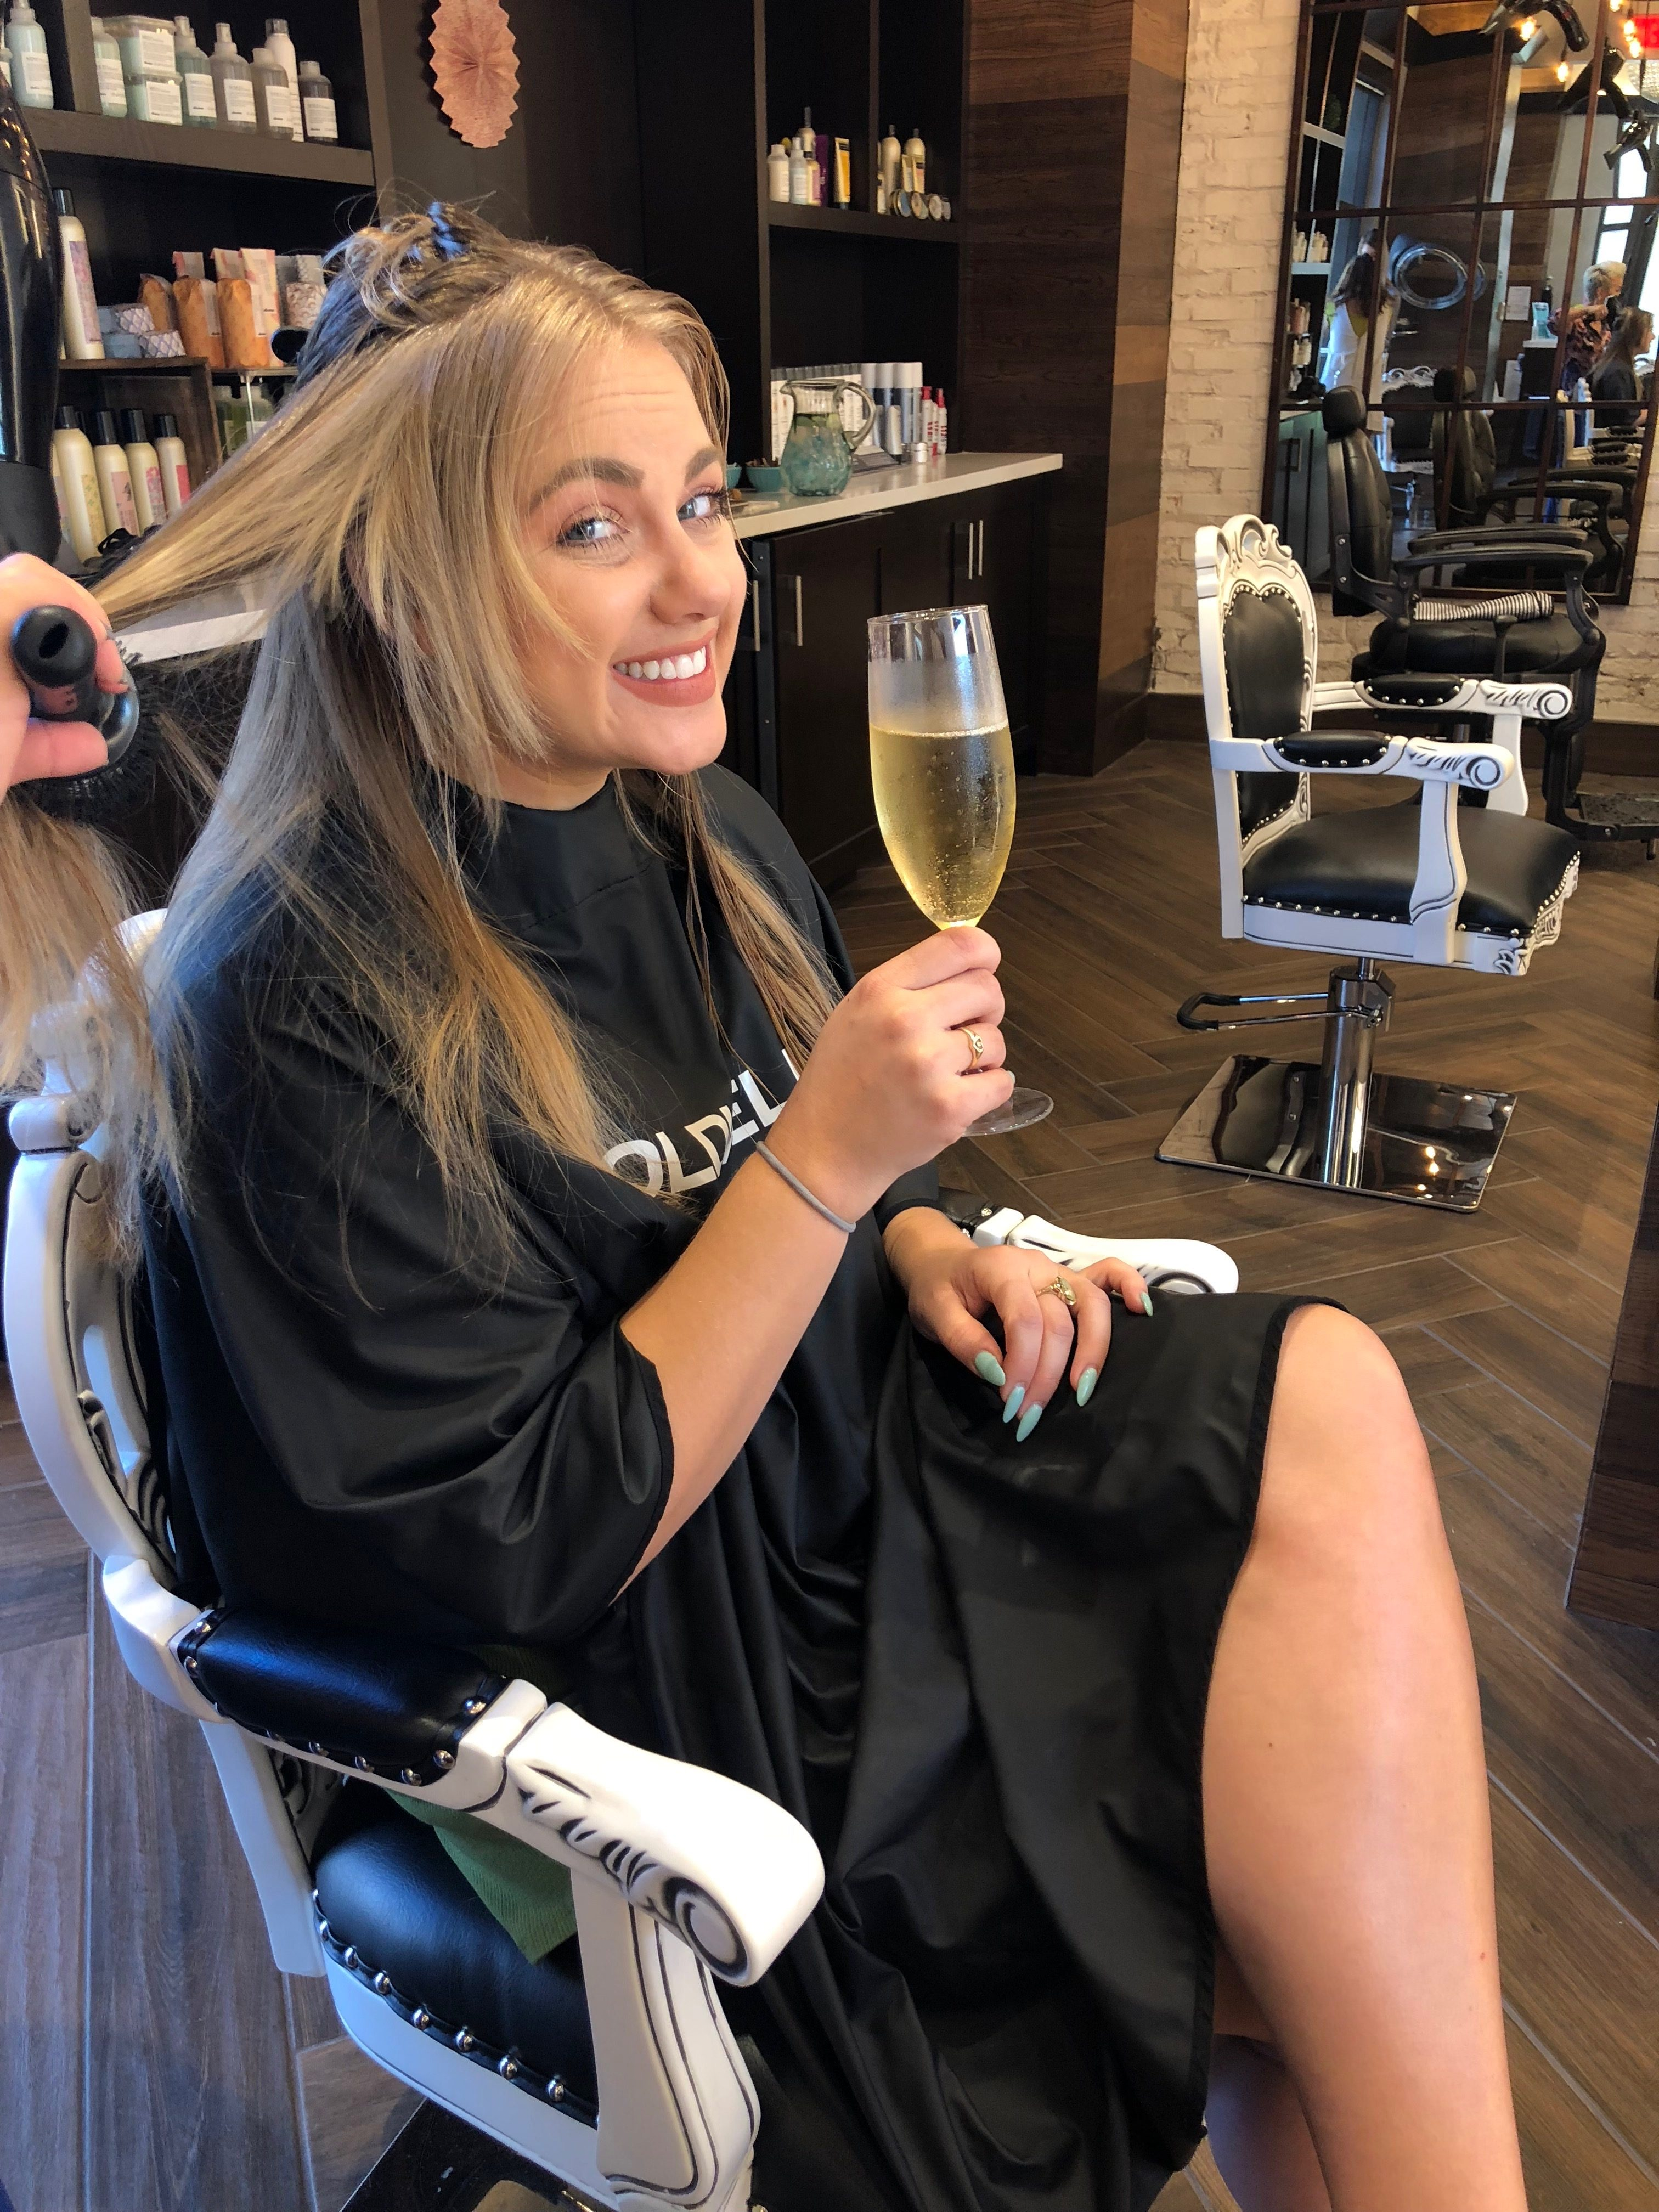 champagne at the hair salon